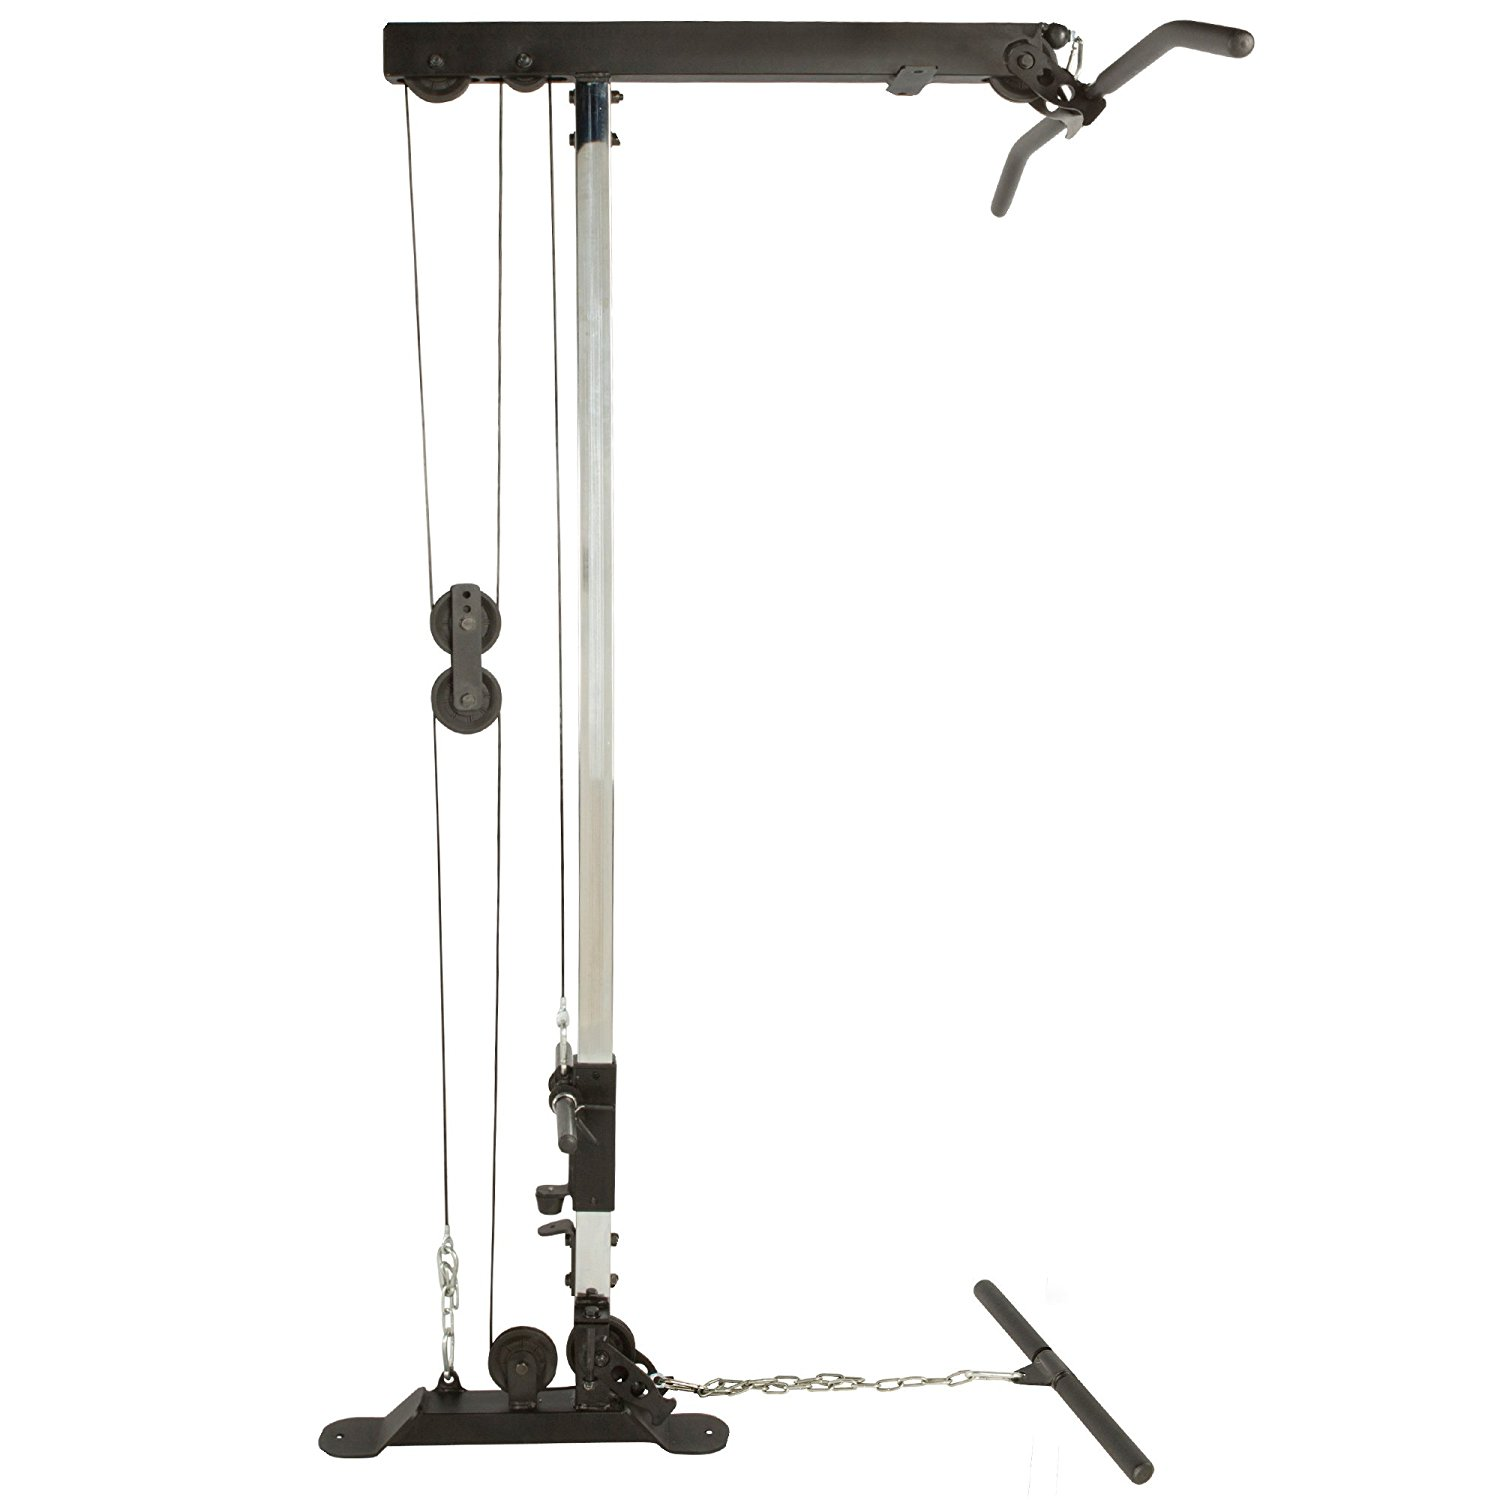 IRONMAN Triathlon X-Class Light Commercial Olympic Lat Pull-Down and Low Row Cable Attachment